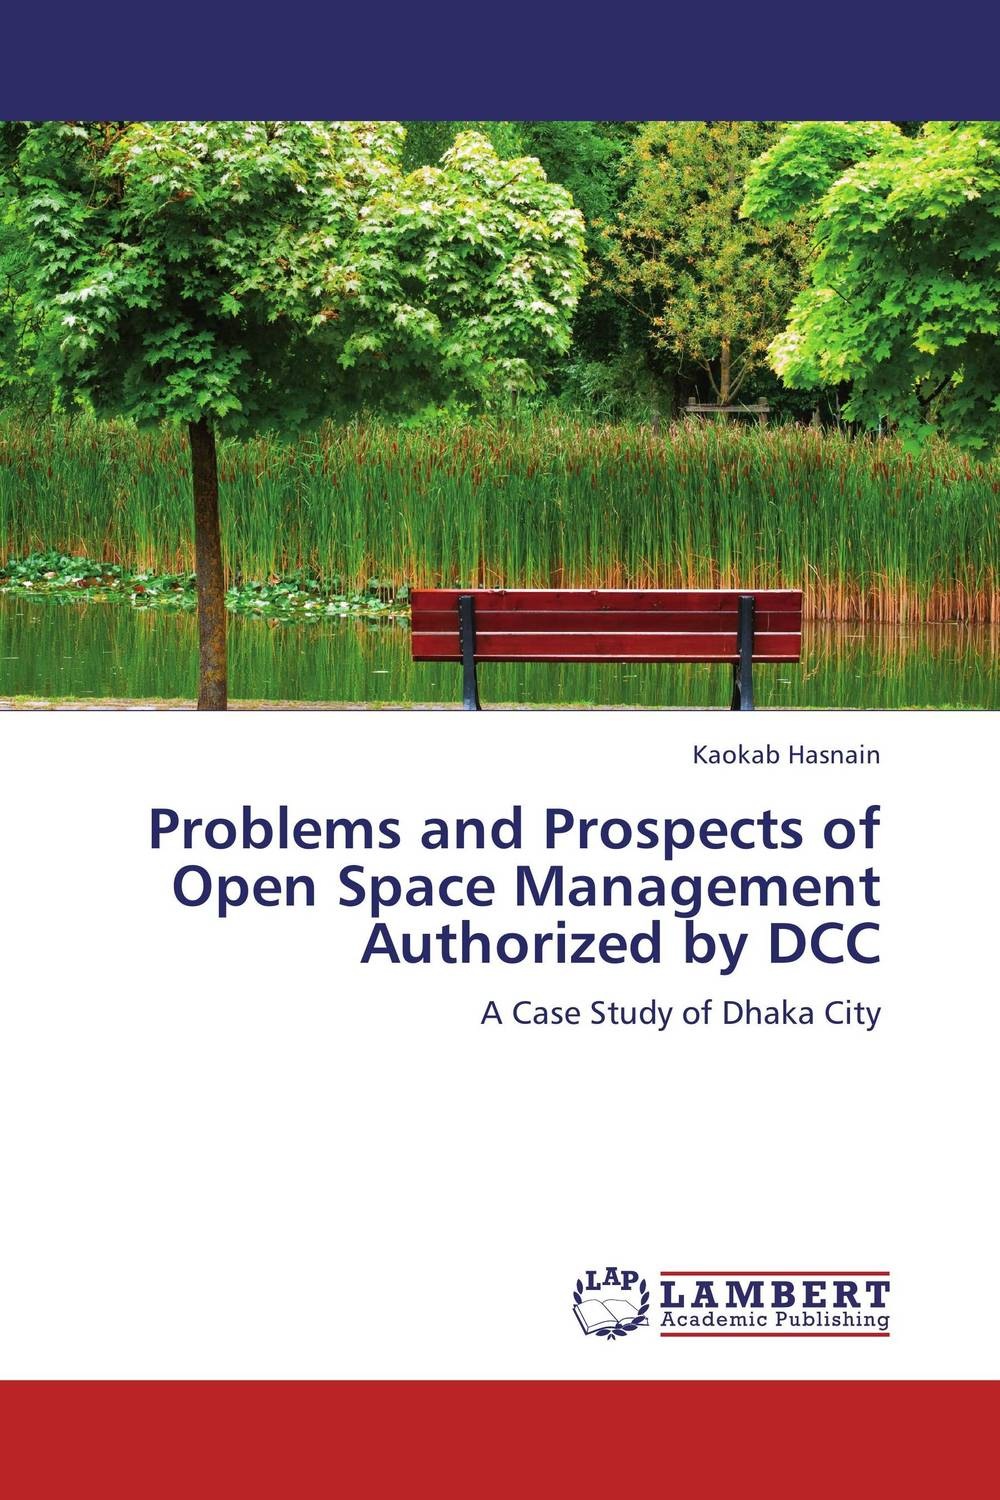 все цены на  Problems and Prospects of Open Space Management Authorized by DCC  онлайн